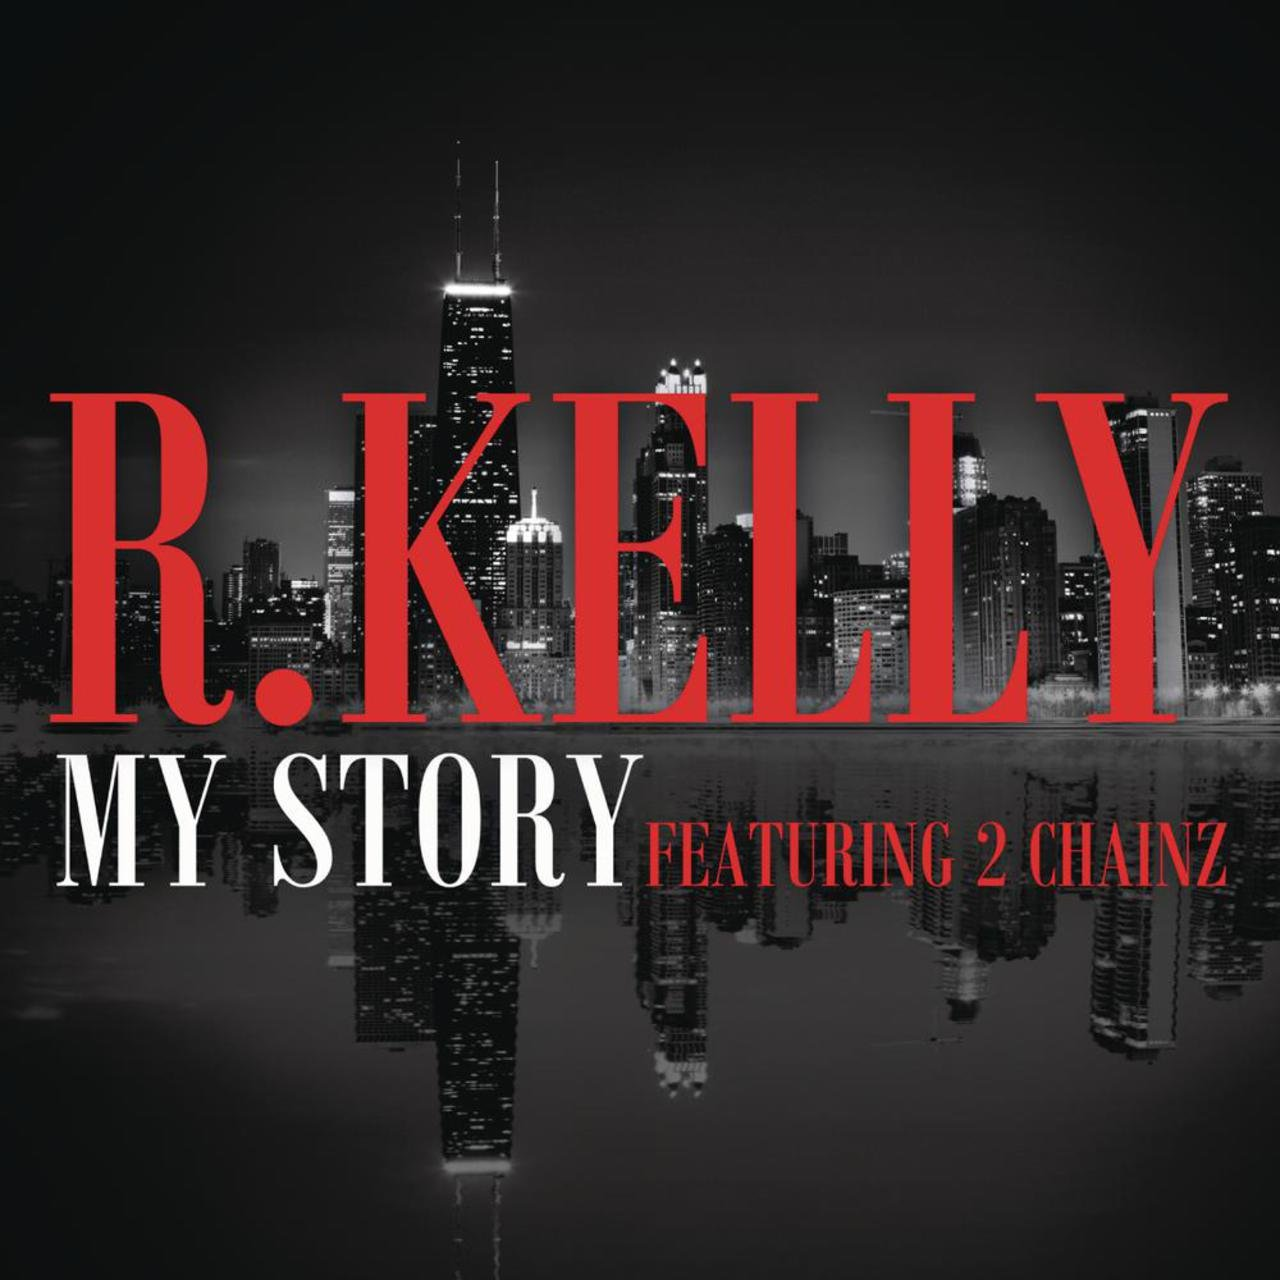 R. Kelly - My Story (ft. 2 Chainz)